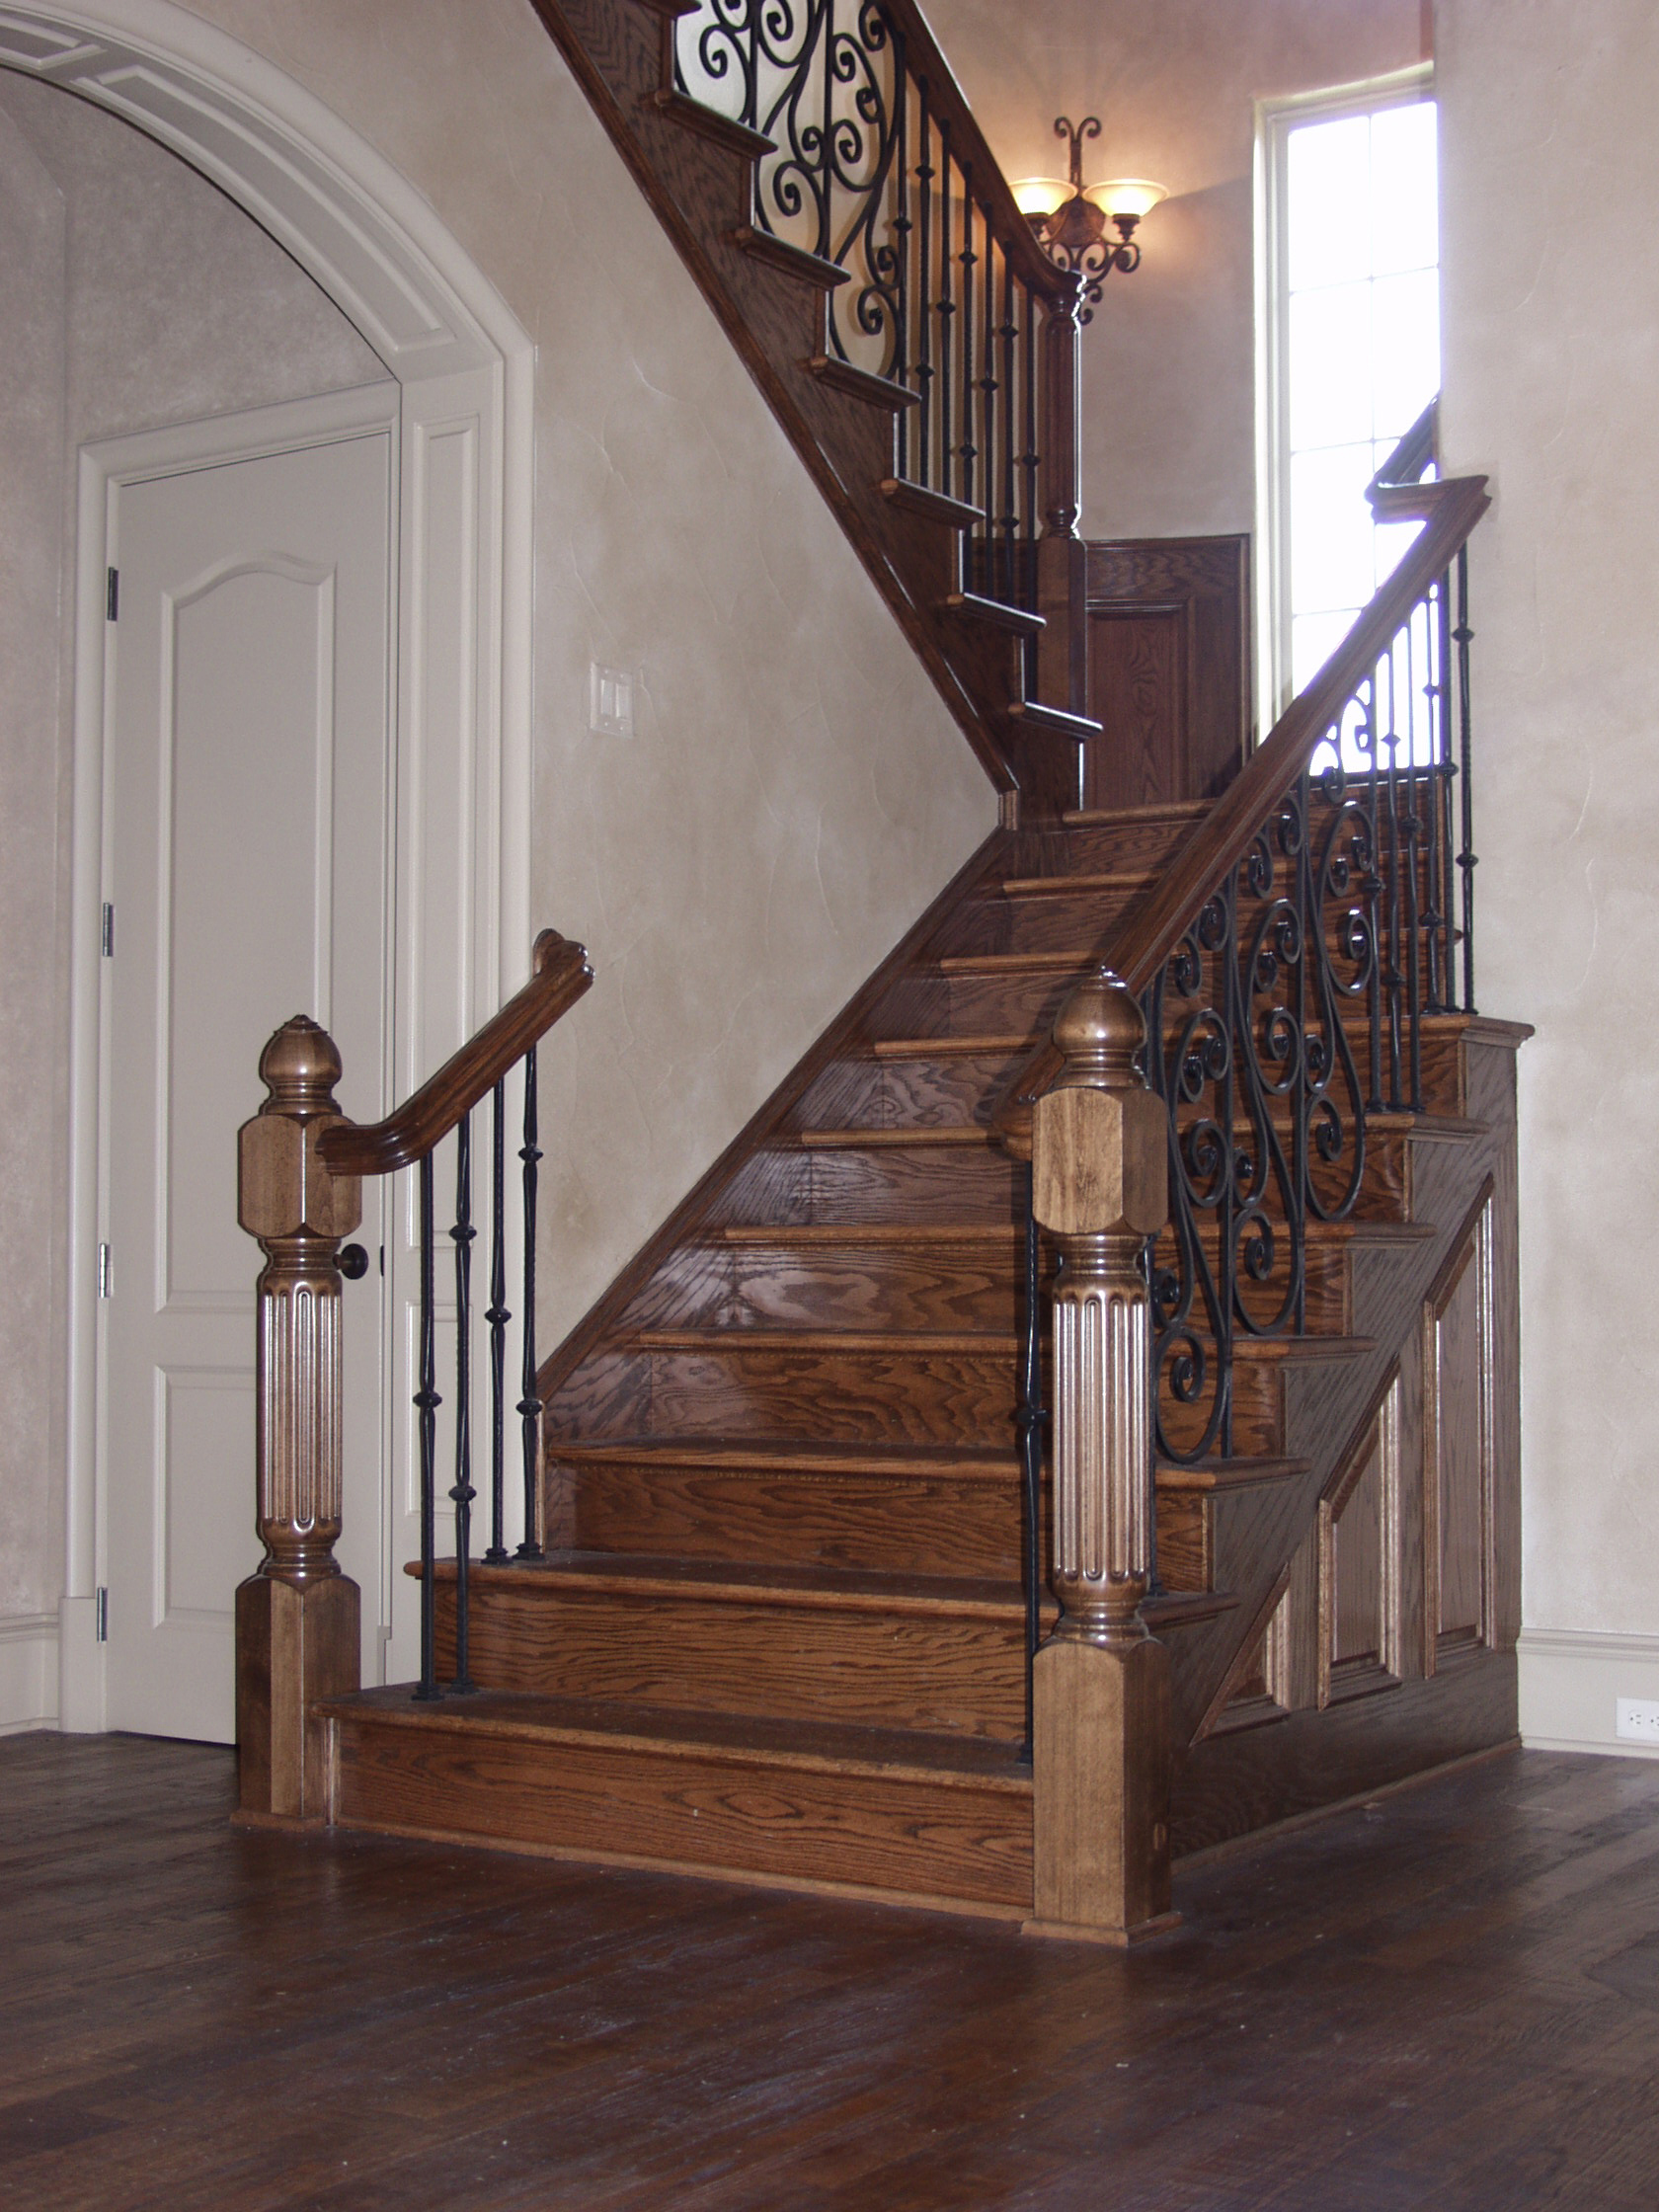 Phantasy Gothic Gallery Gothic Baluster Gallery By House Forgings Catalog House Forgings Locations Forgings House houzz 01 House Of Forgings